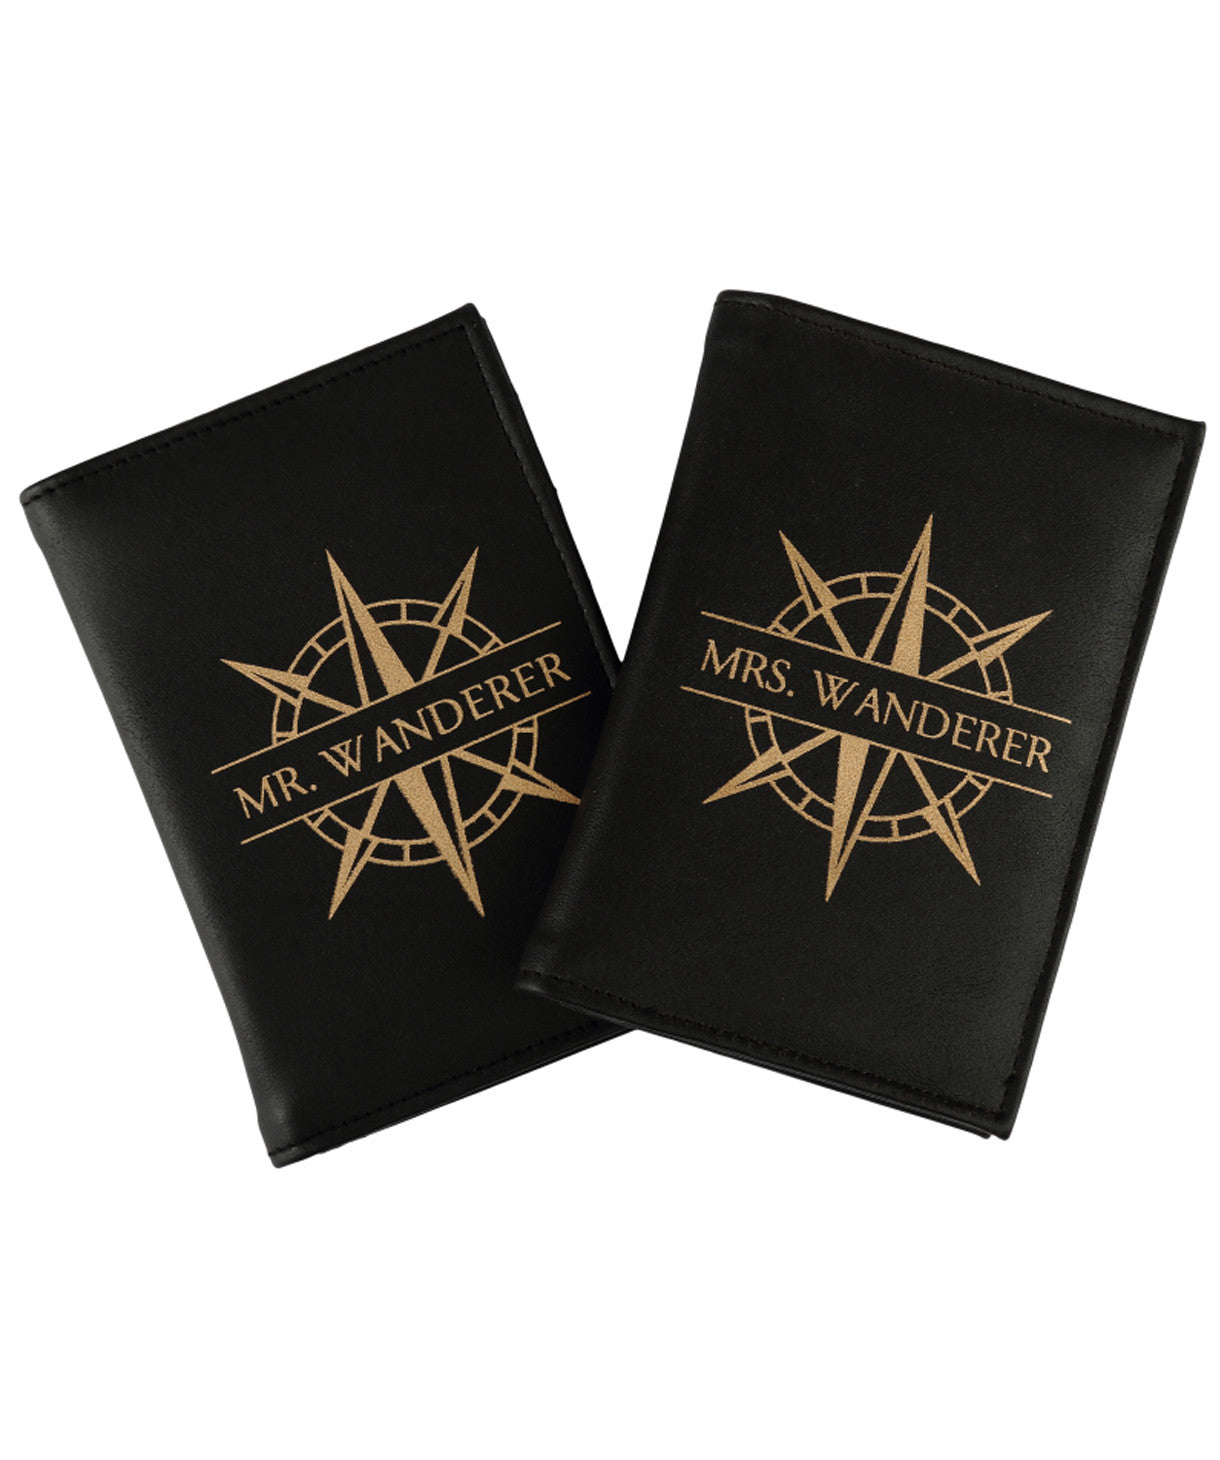 Uptownie X 2AM-Mr & Mrs. Wanderer Set Black Passport Holders - Uptownie